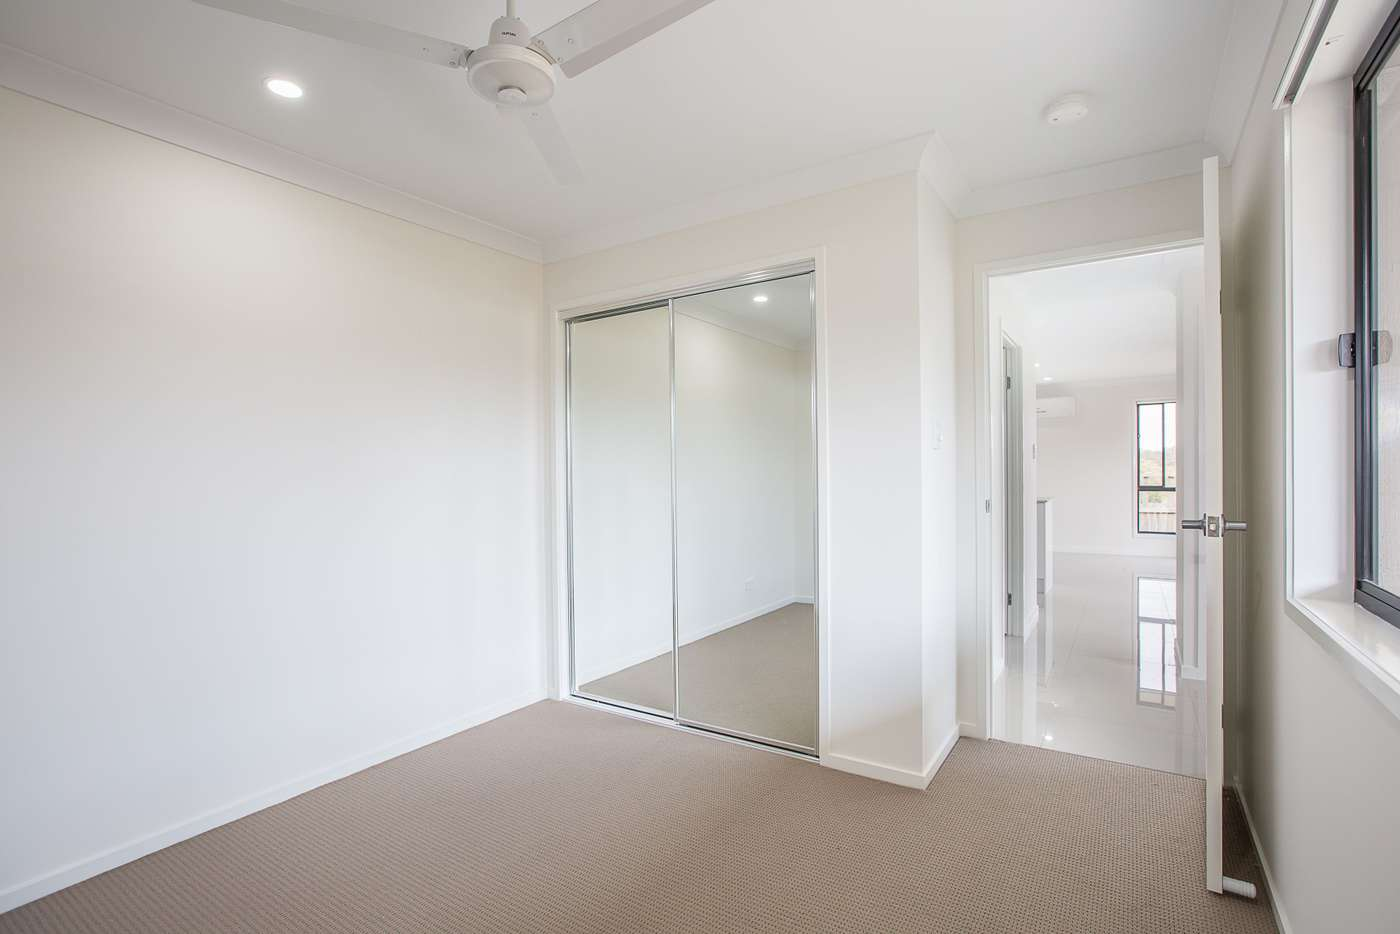 Sixth view of Homely house listing, 2/15 Carron Court, Brassall QLD 4305